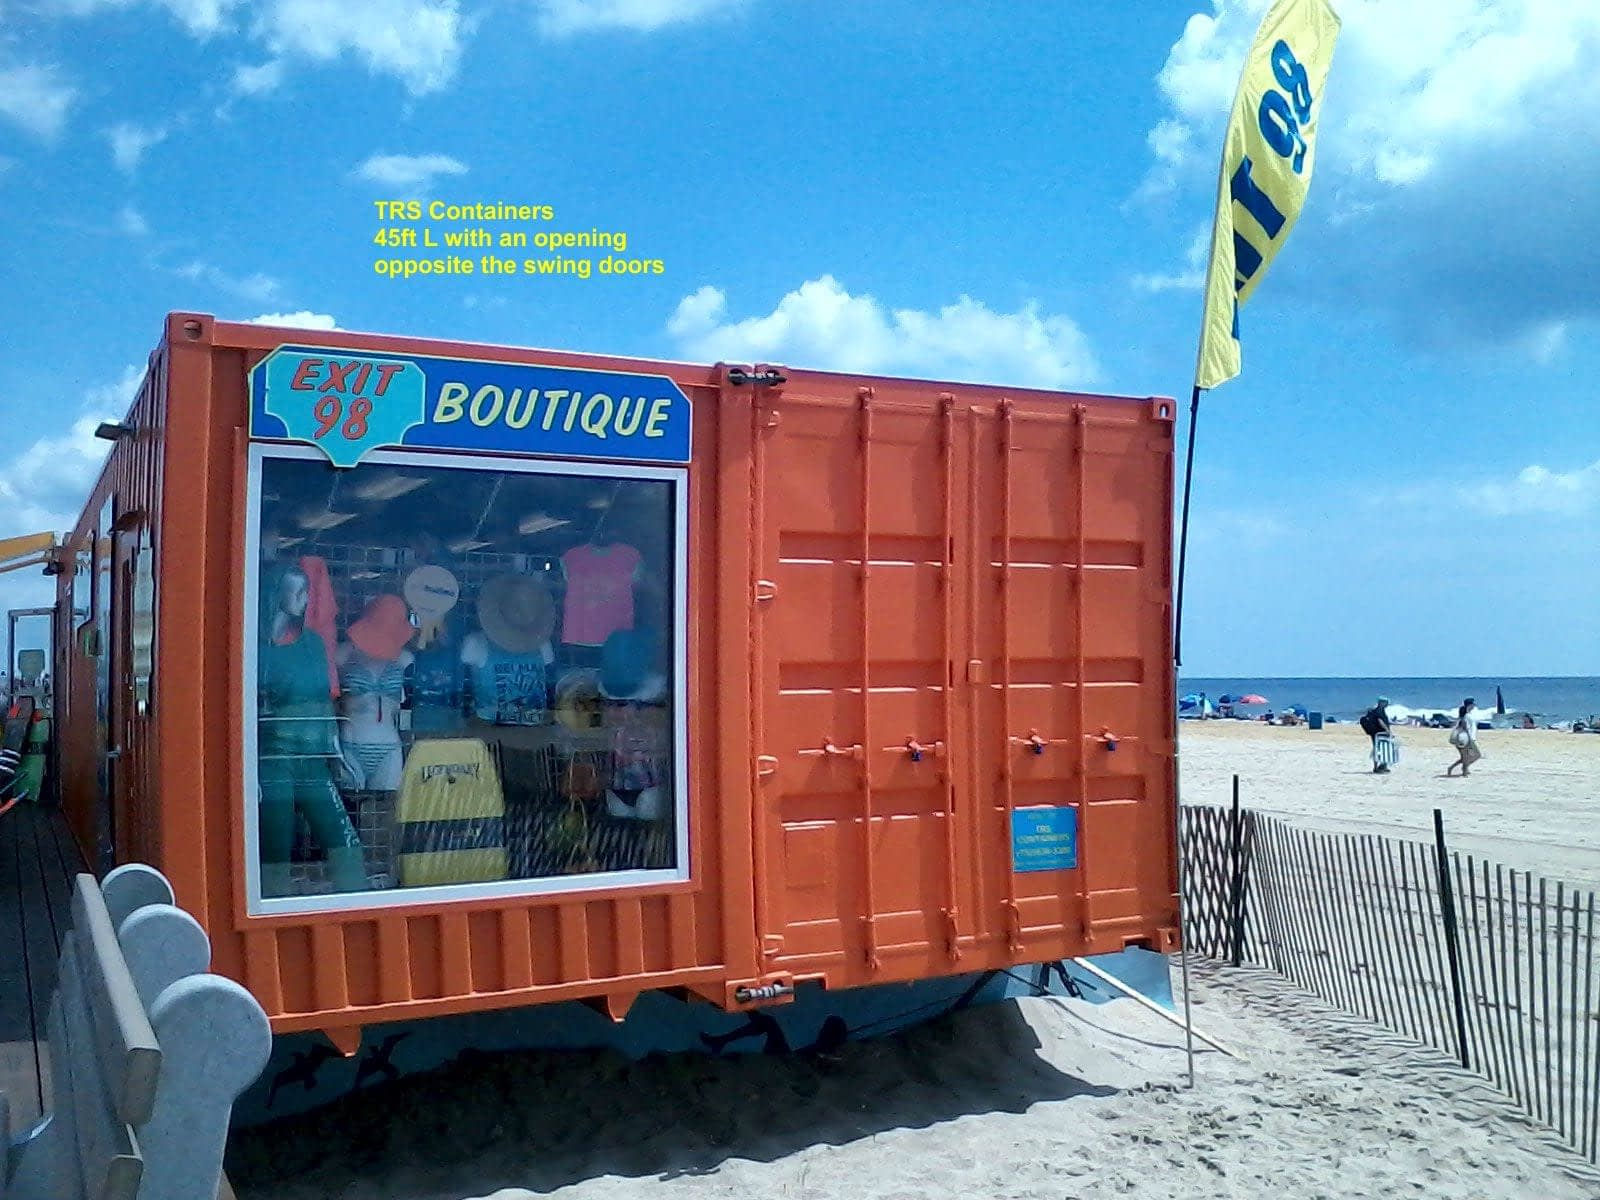 TRS Containers can build container homes, stores, restaurants and bars